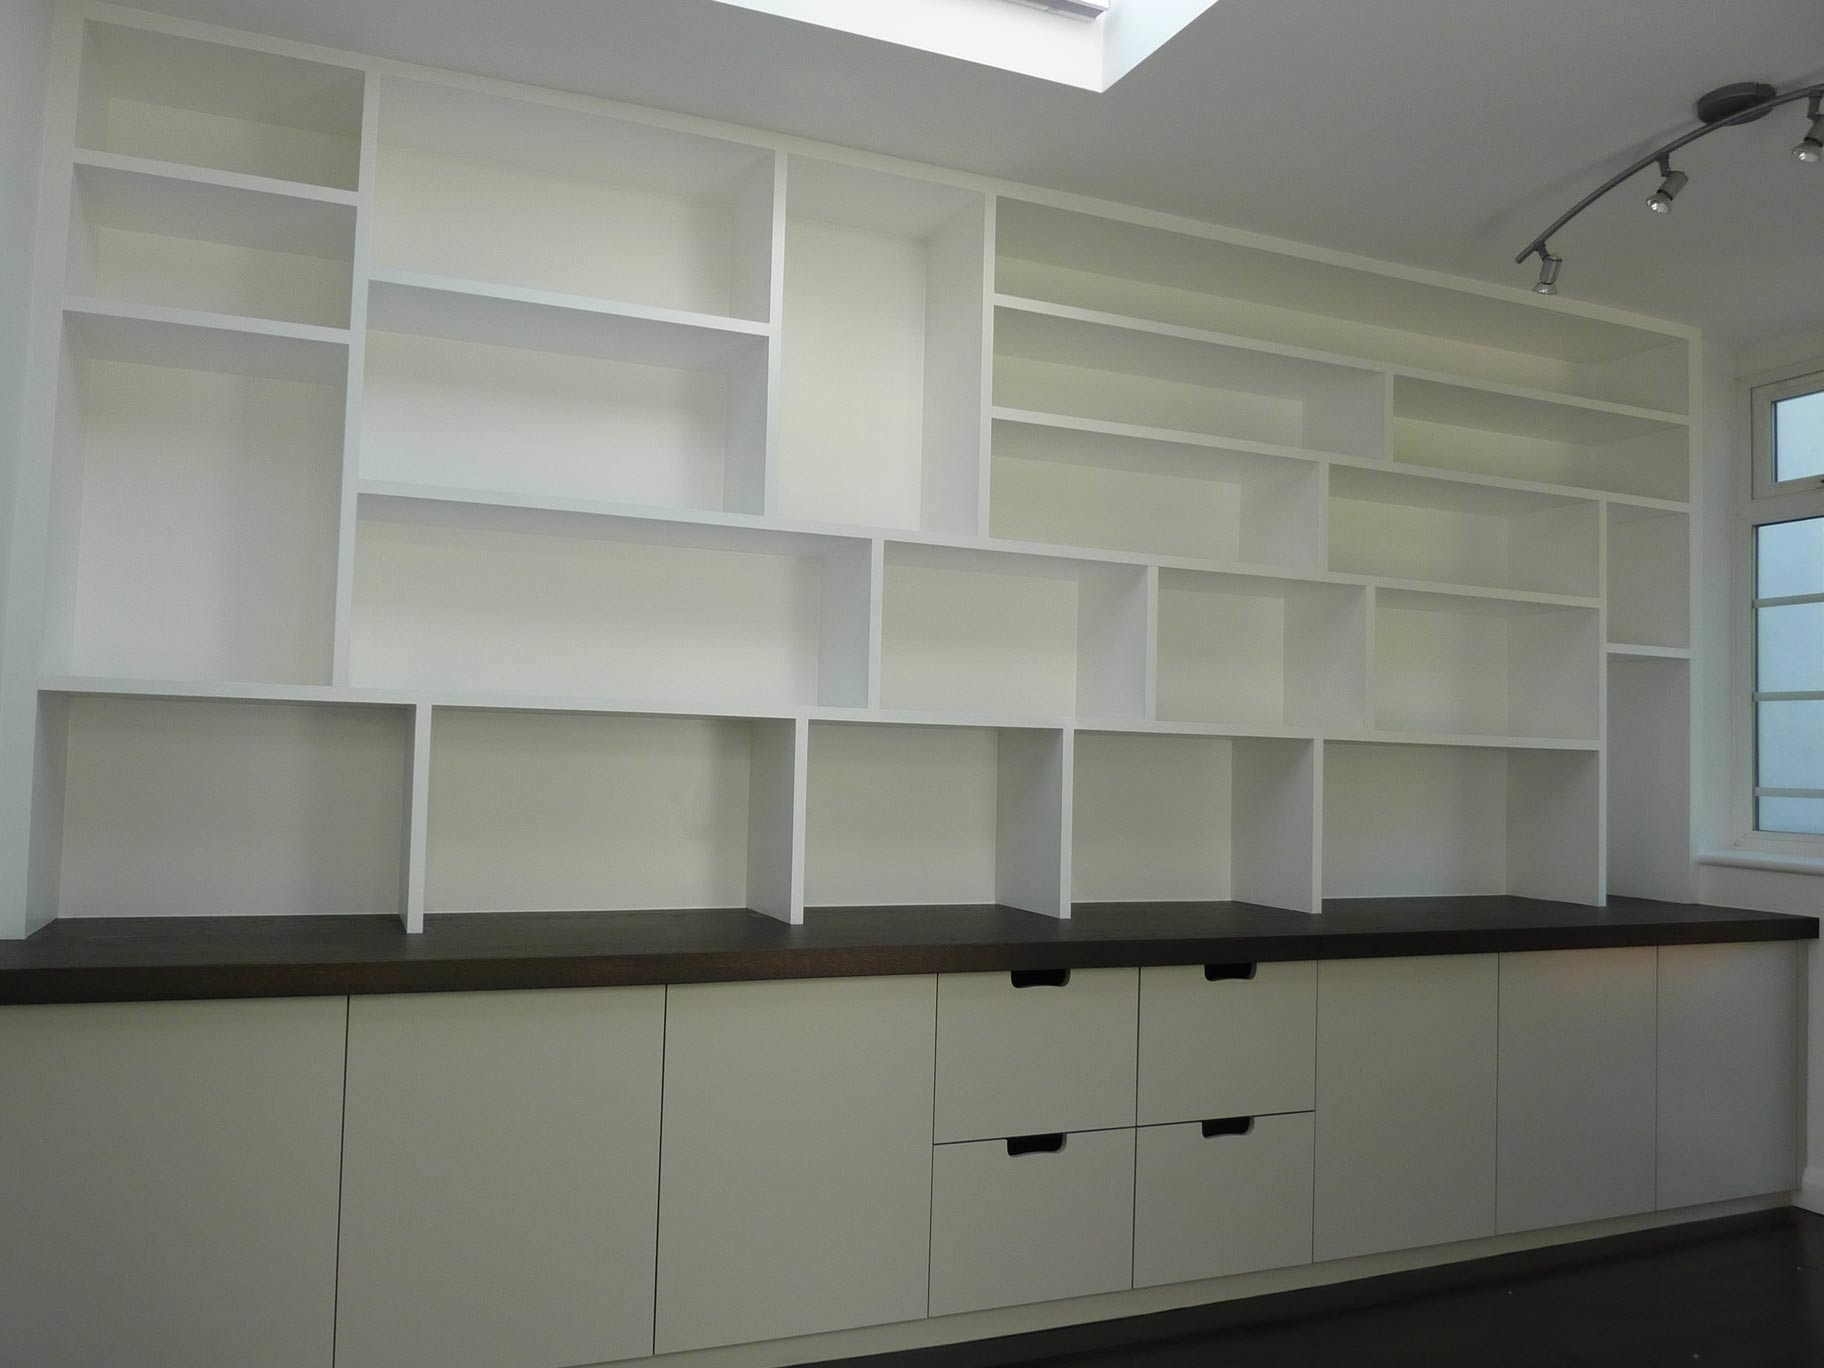 Latest Study Cupboards Regarding Fitted Study Cabinetry, Handmadepeter Henderson Furniture (View 8 of 15)